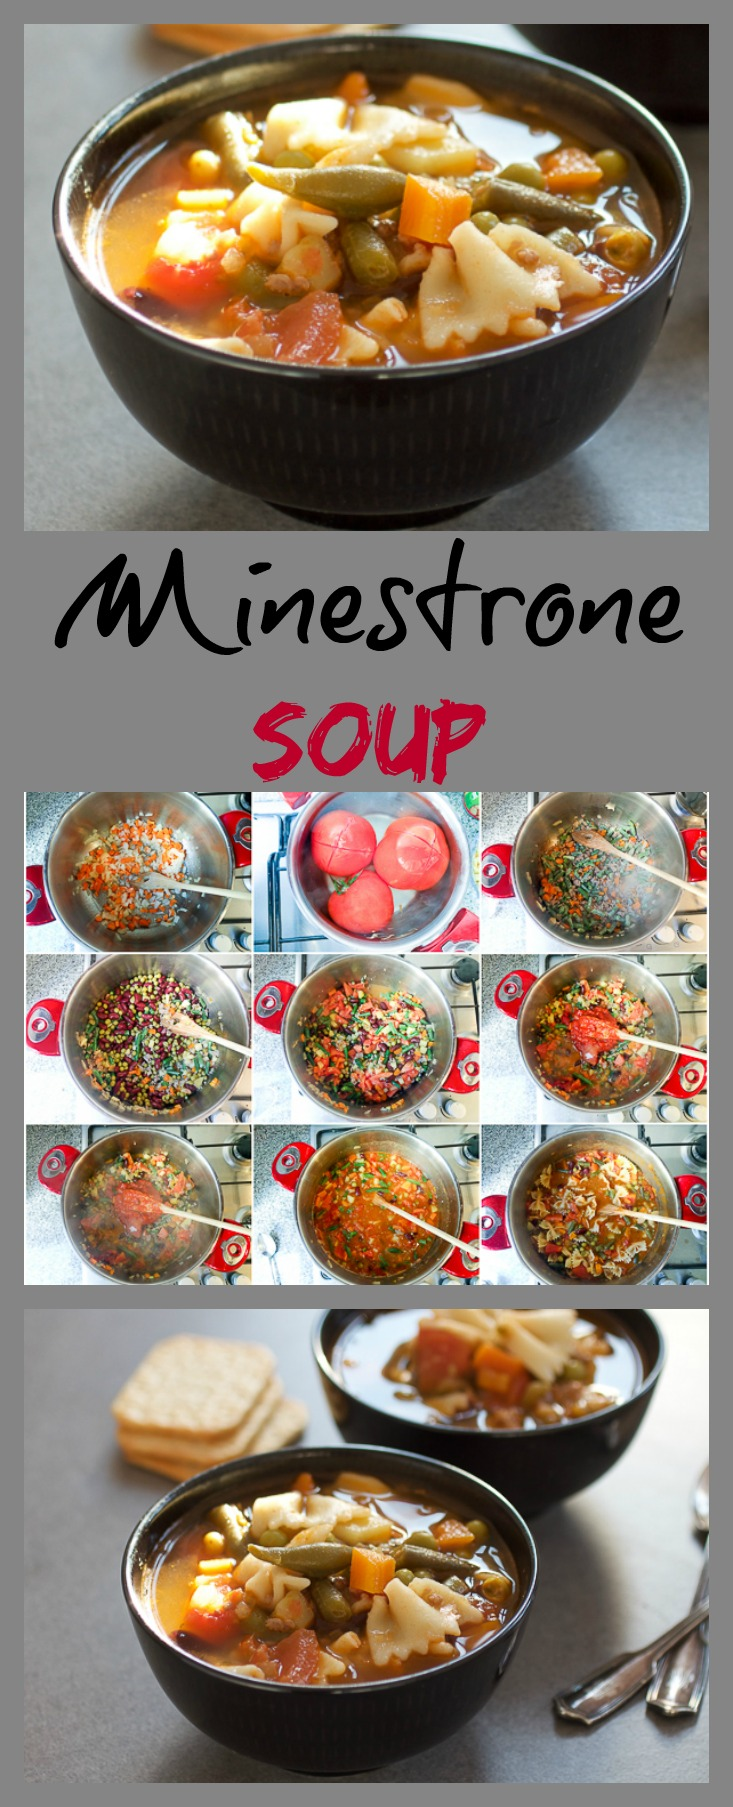 Minestrone soup: thick, warm, comforting and overflowing with vegetables.